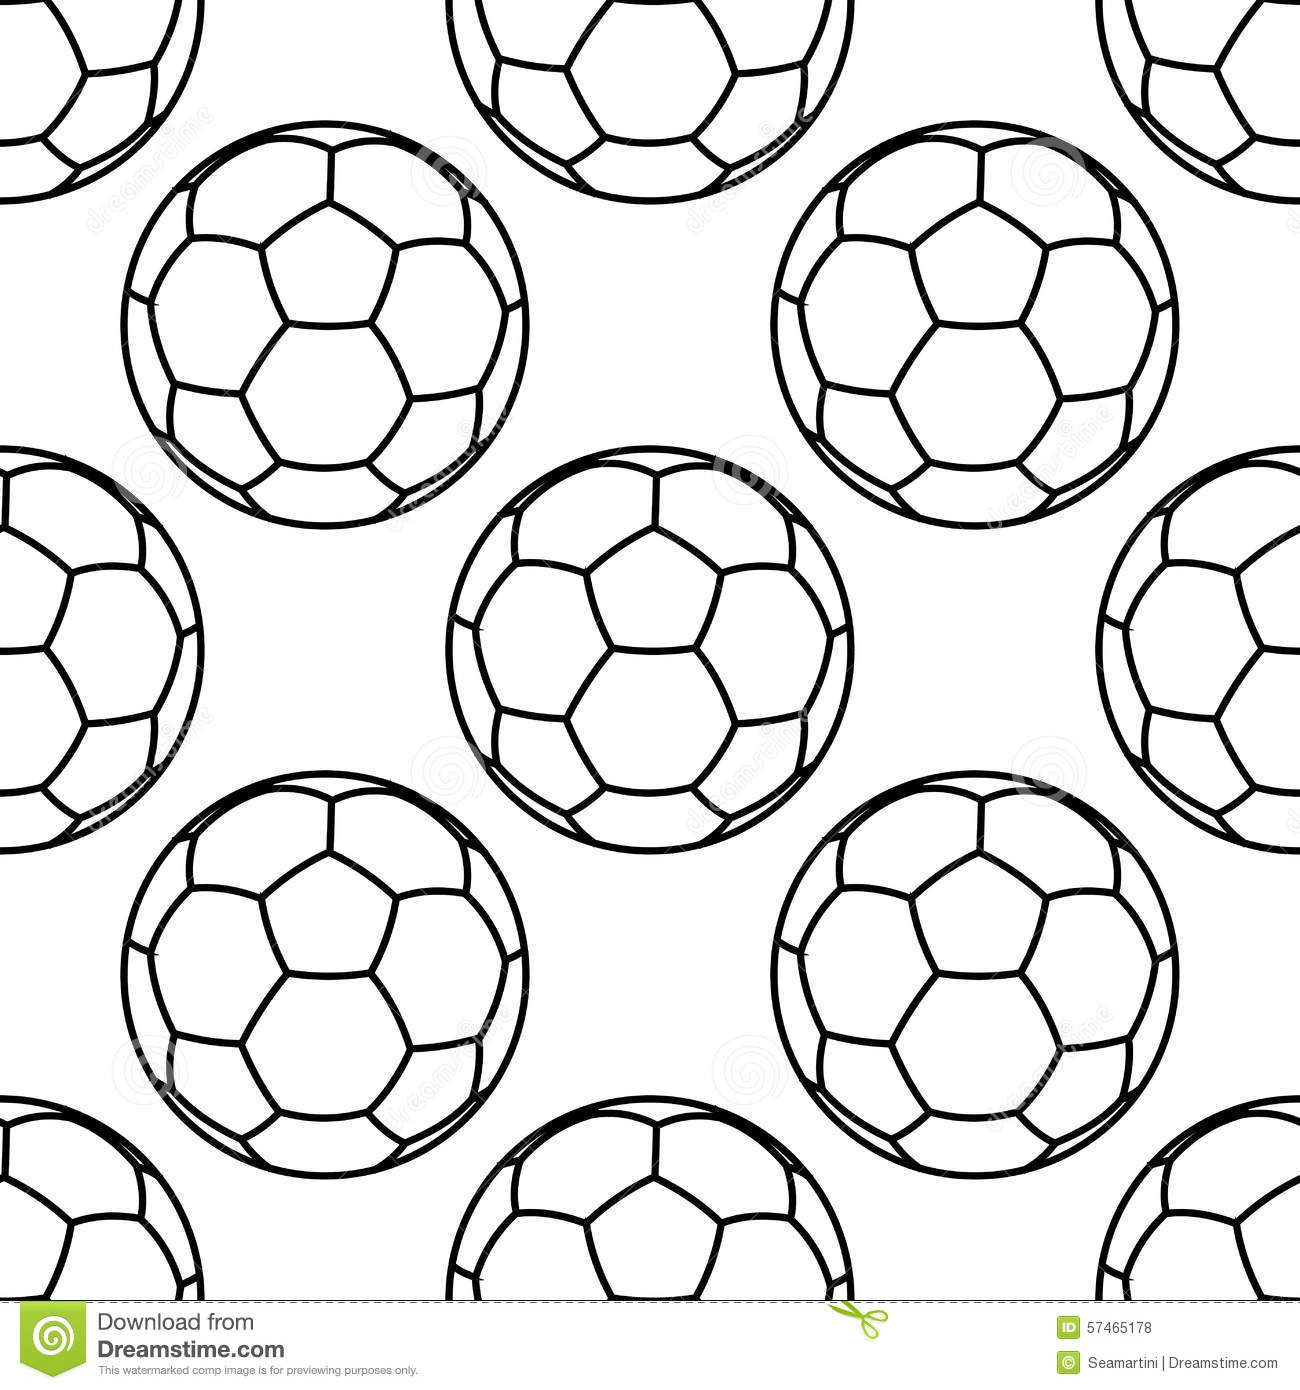 Football Or Soccer Balls Outlines Seamless Pattern Stock